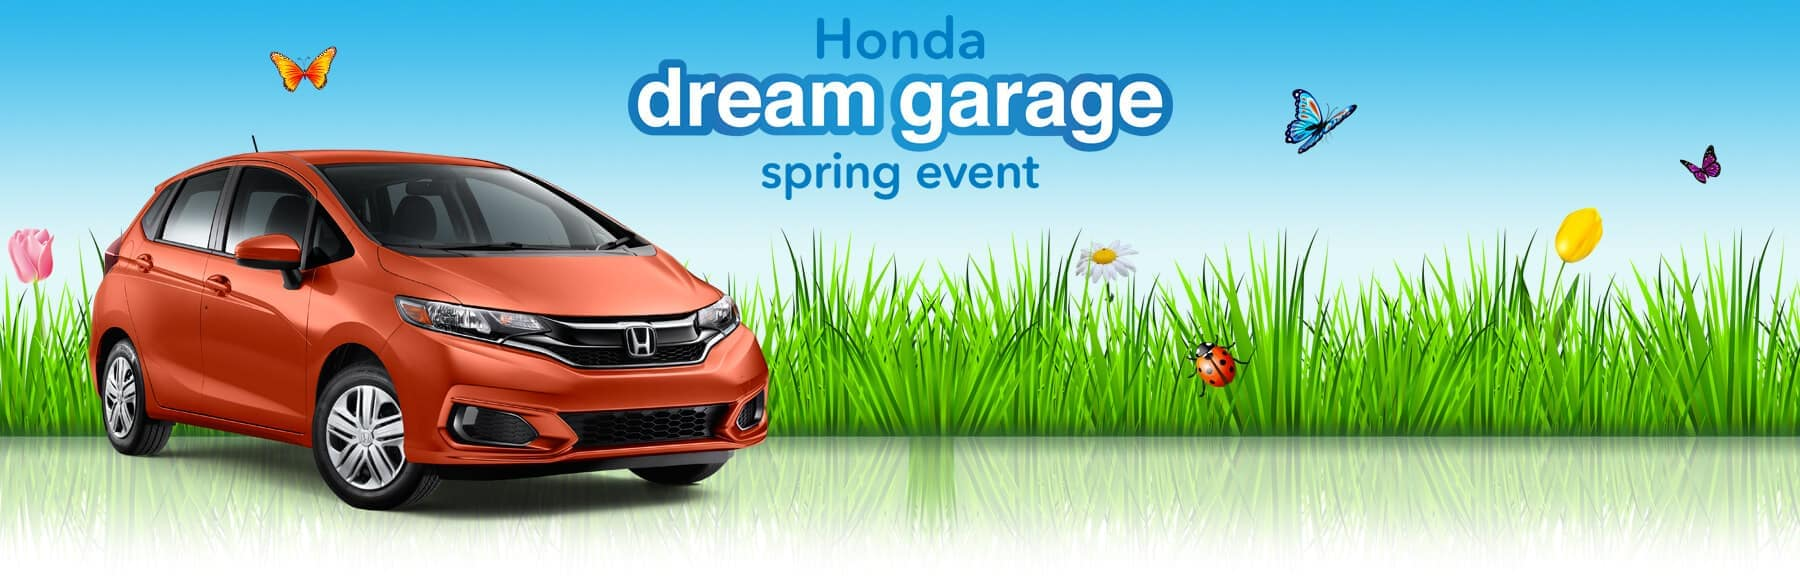 Honda Dream Garage Spring Event 2018 Honda Fit